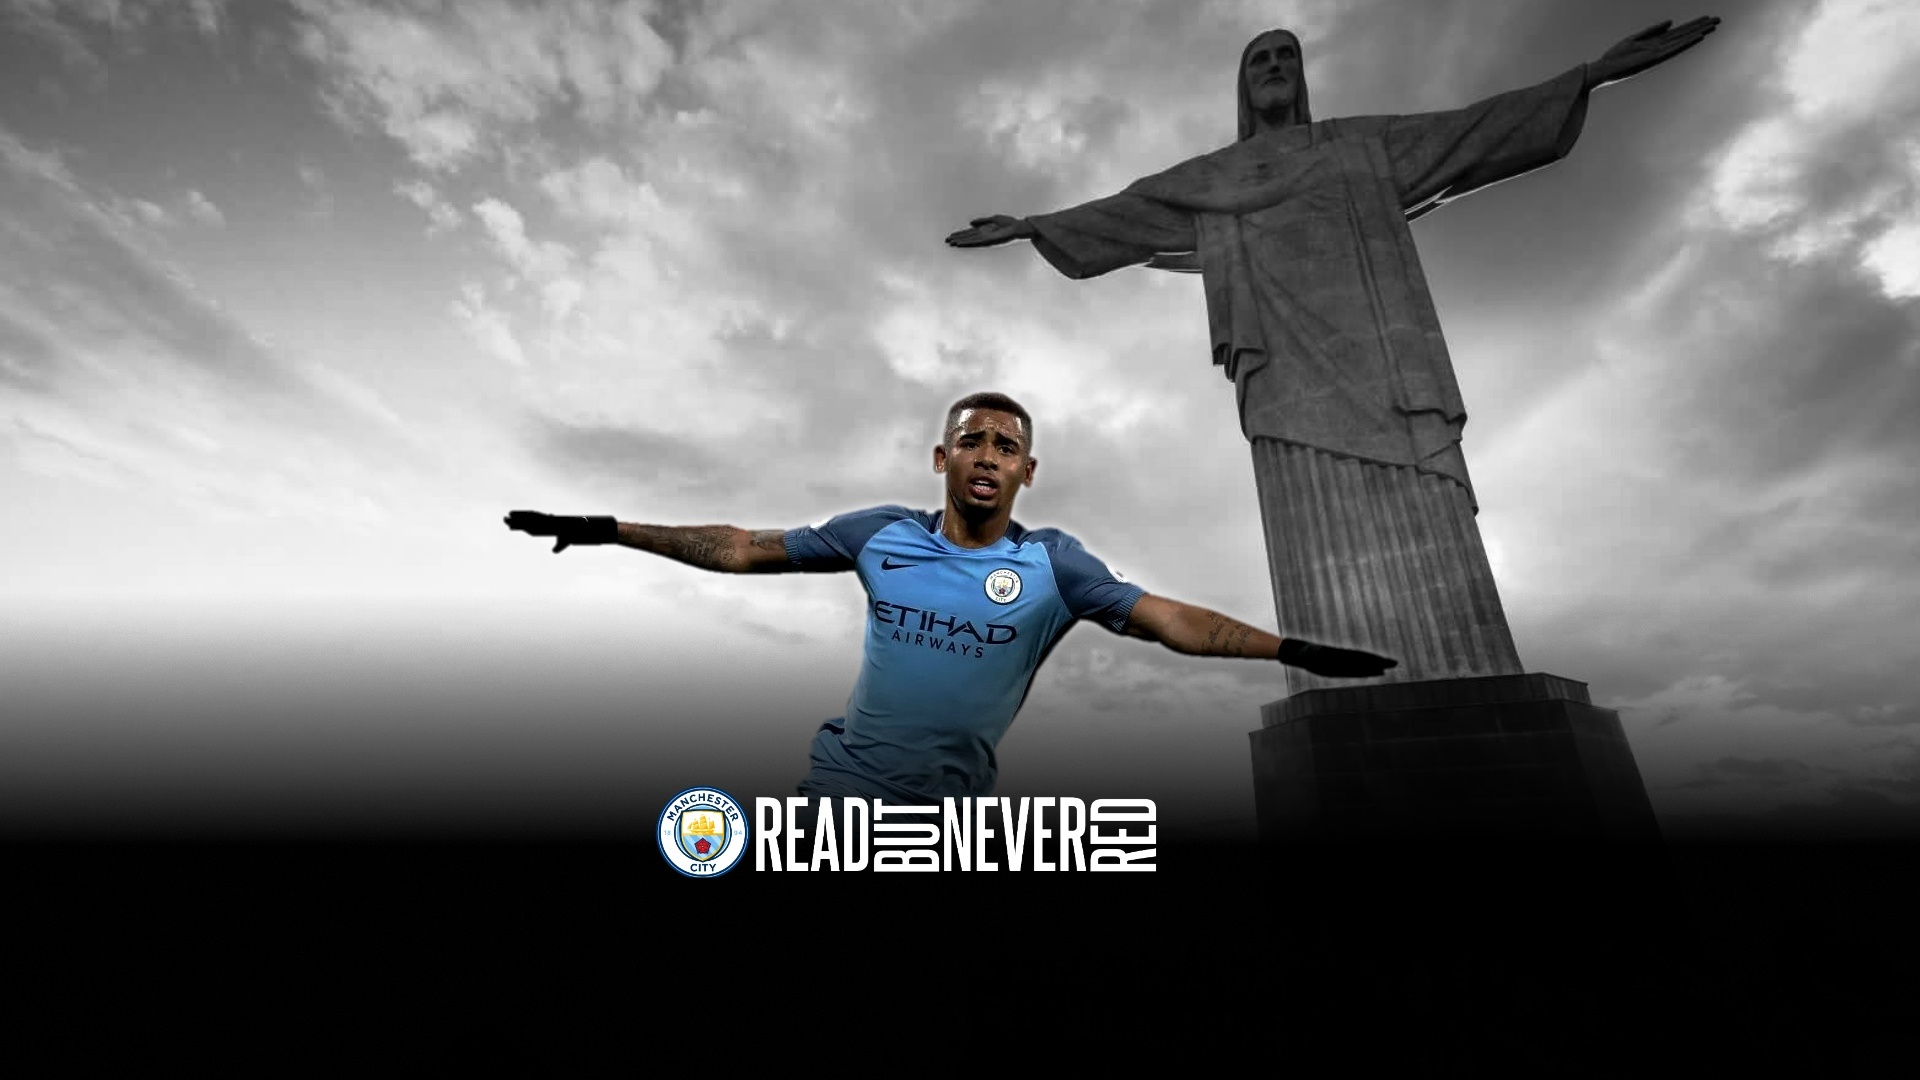 Jesus the Redeemer - Gabriel is the face of City's future but his goals could yet help land silverware in the present.